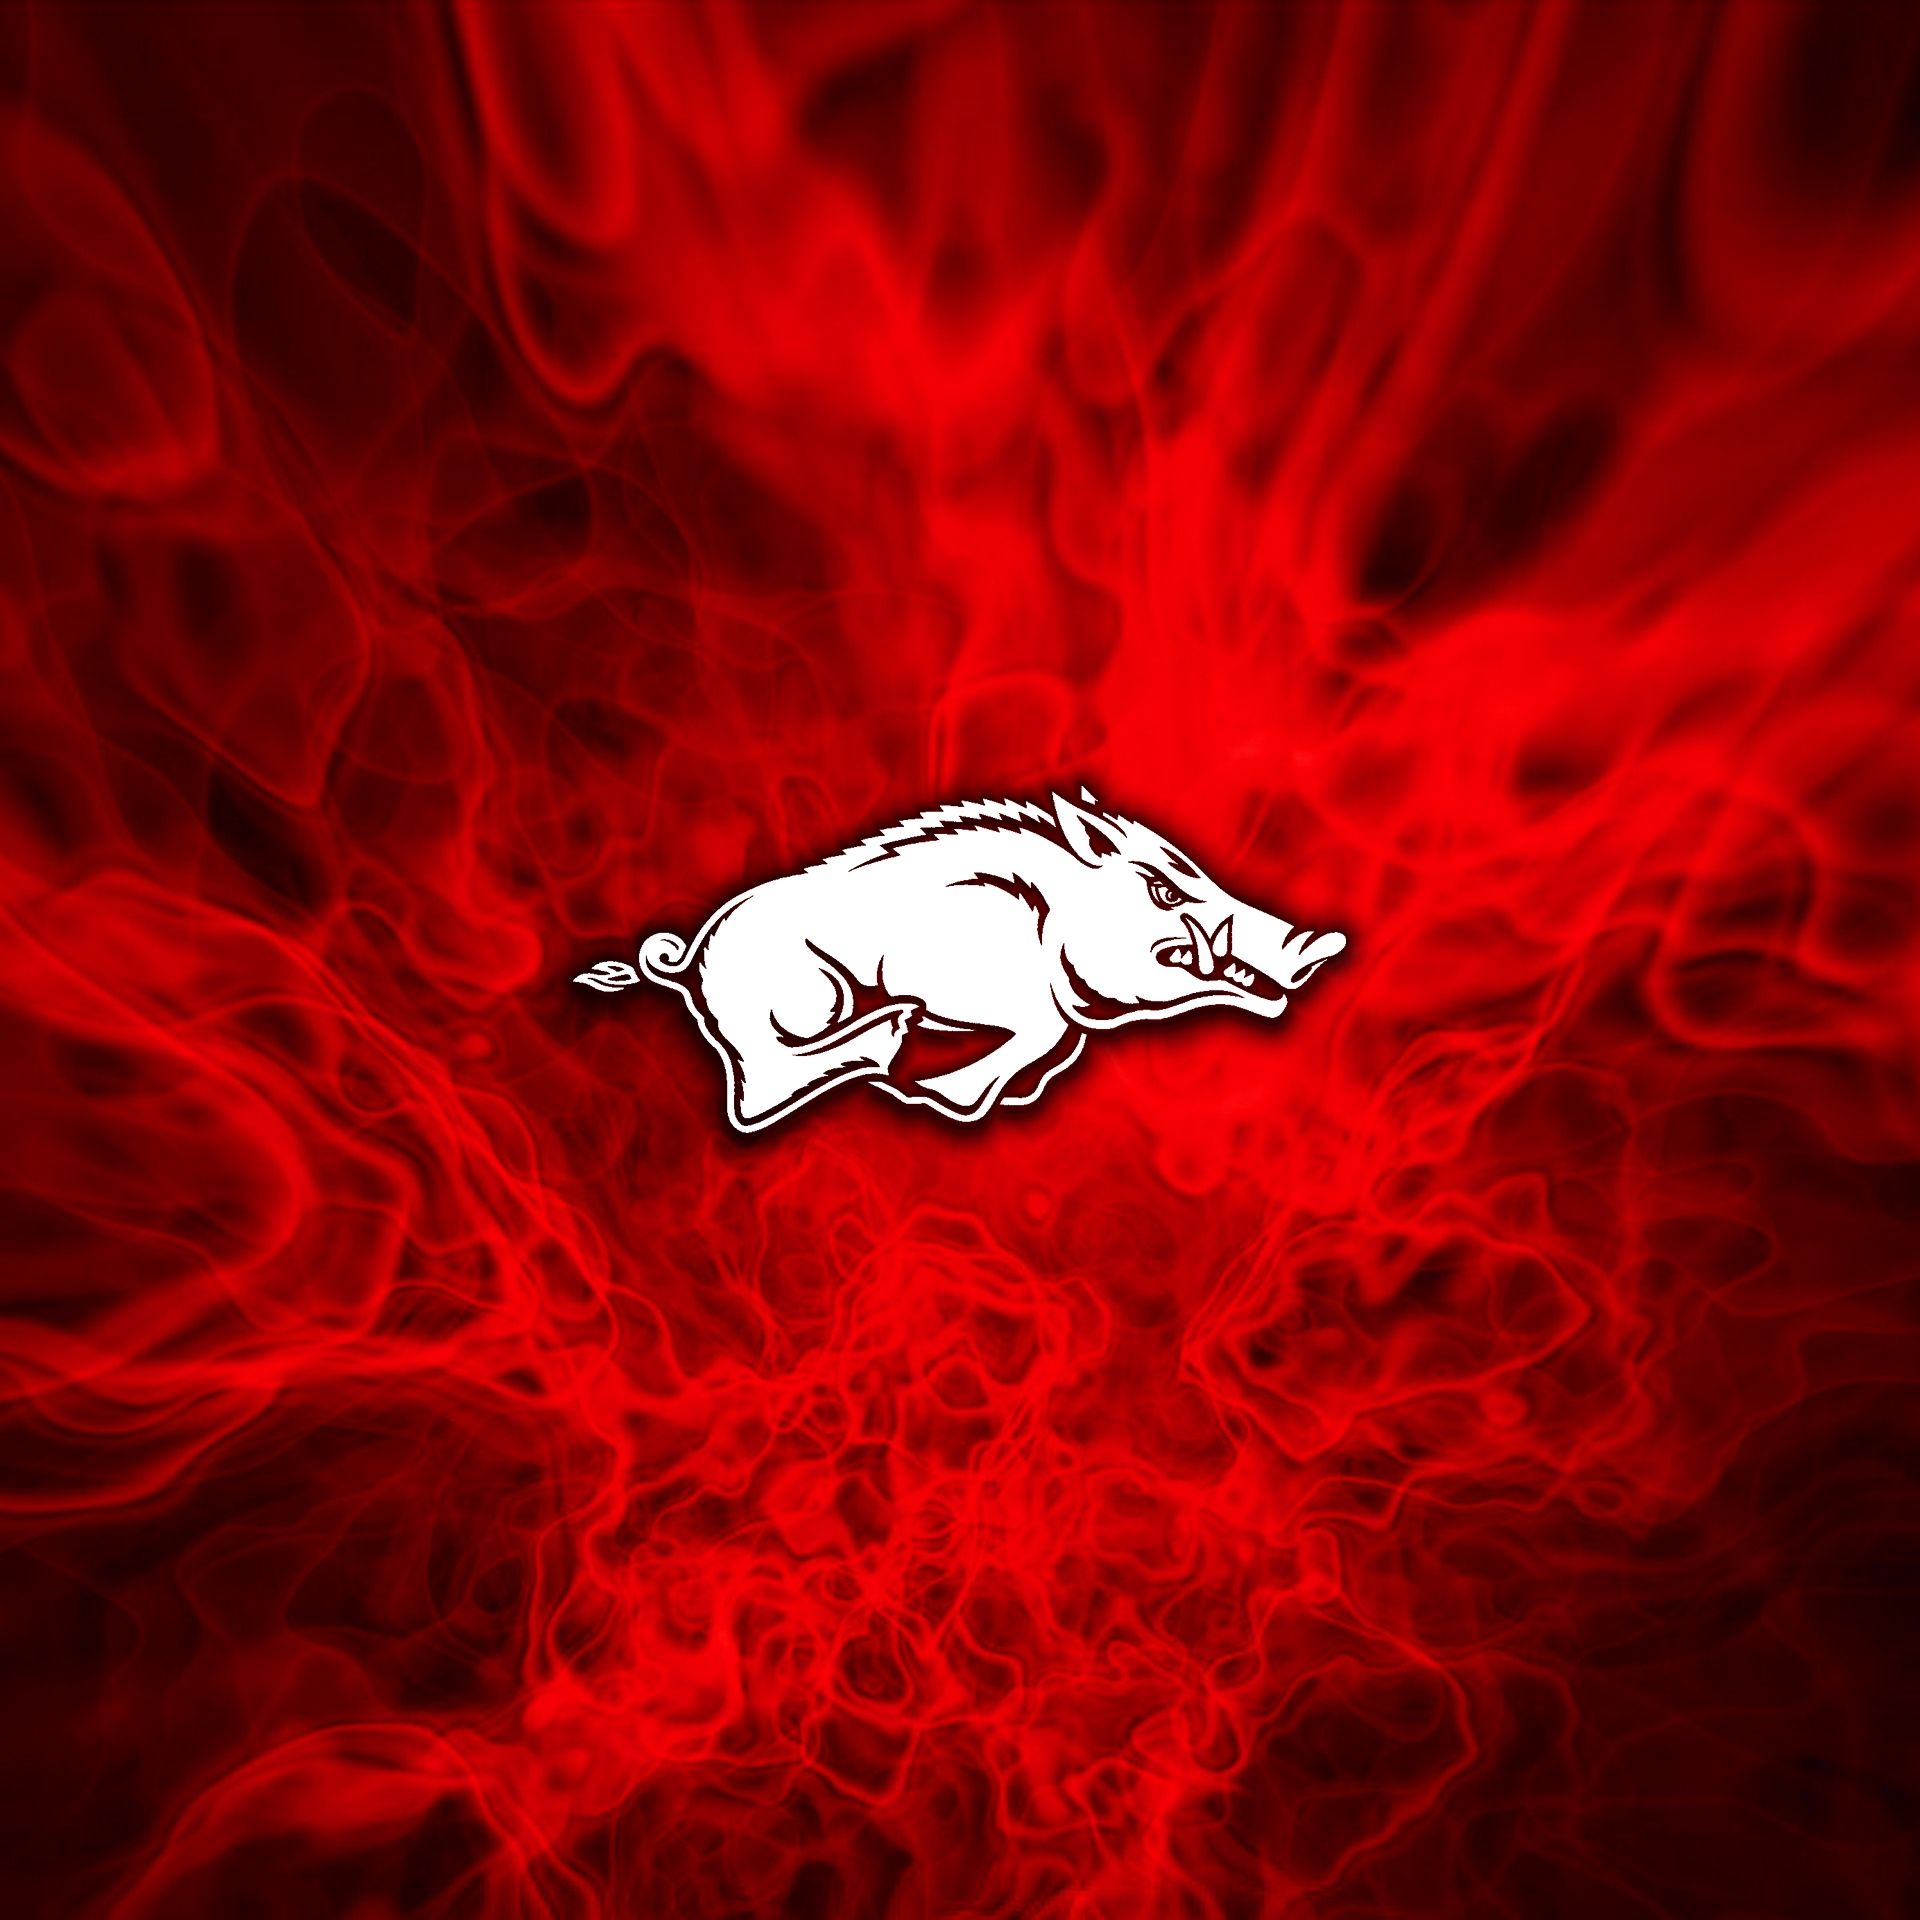 Arkansas Razorbacks Wallpaper Android Apps On Google Play Arkansas Razorbacks Football Arkansas Razorbacks Razorbacks